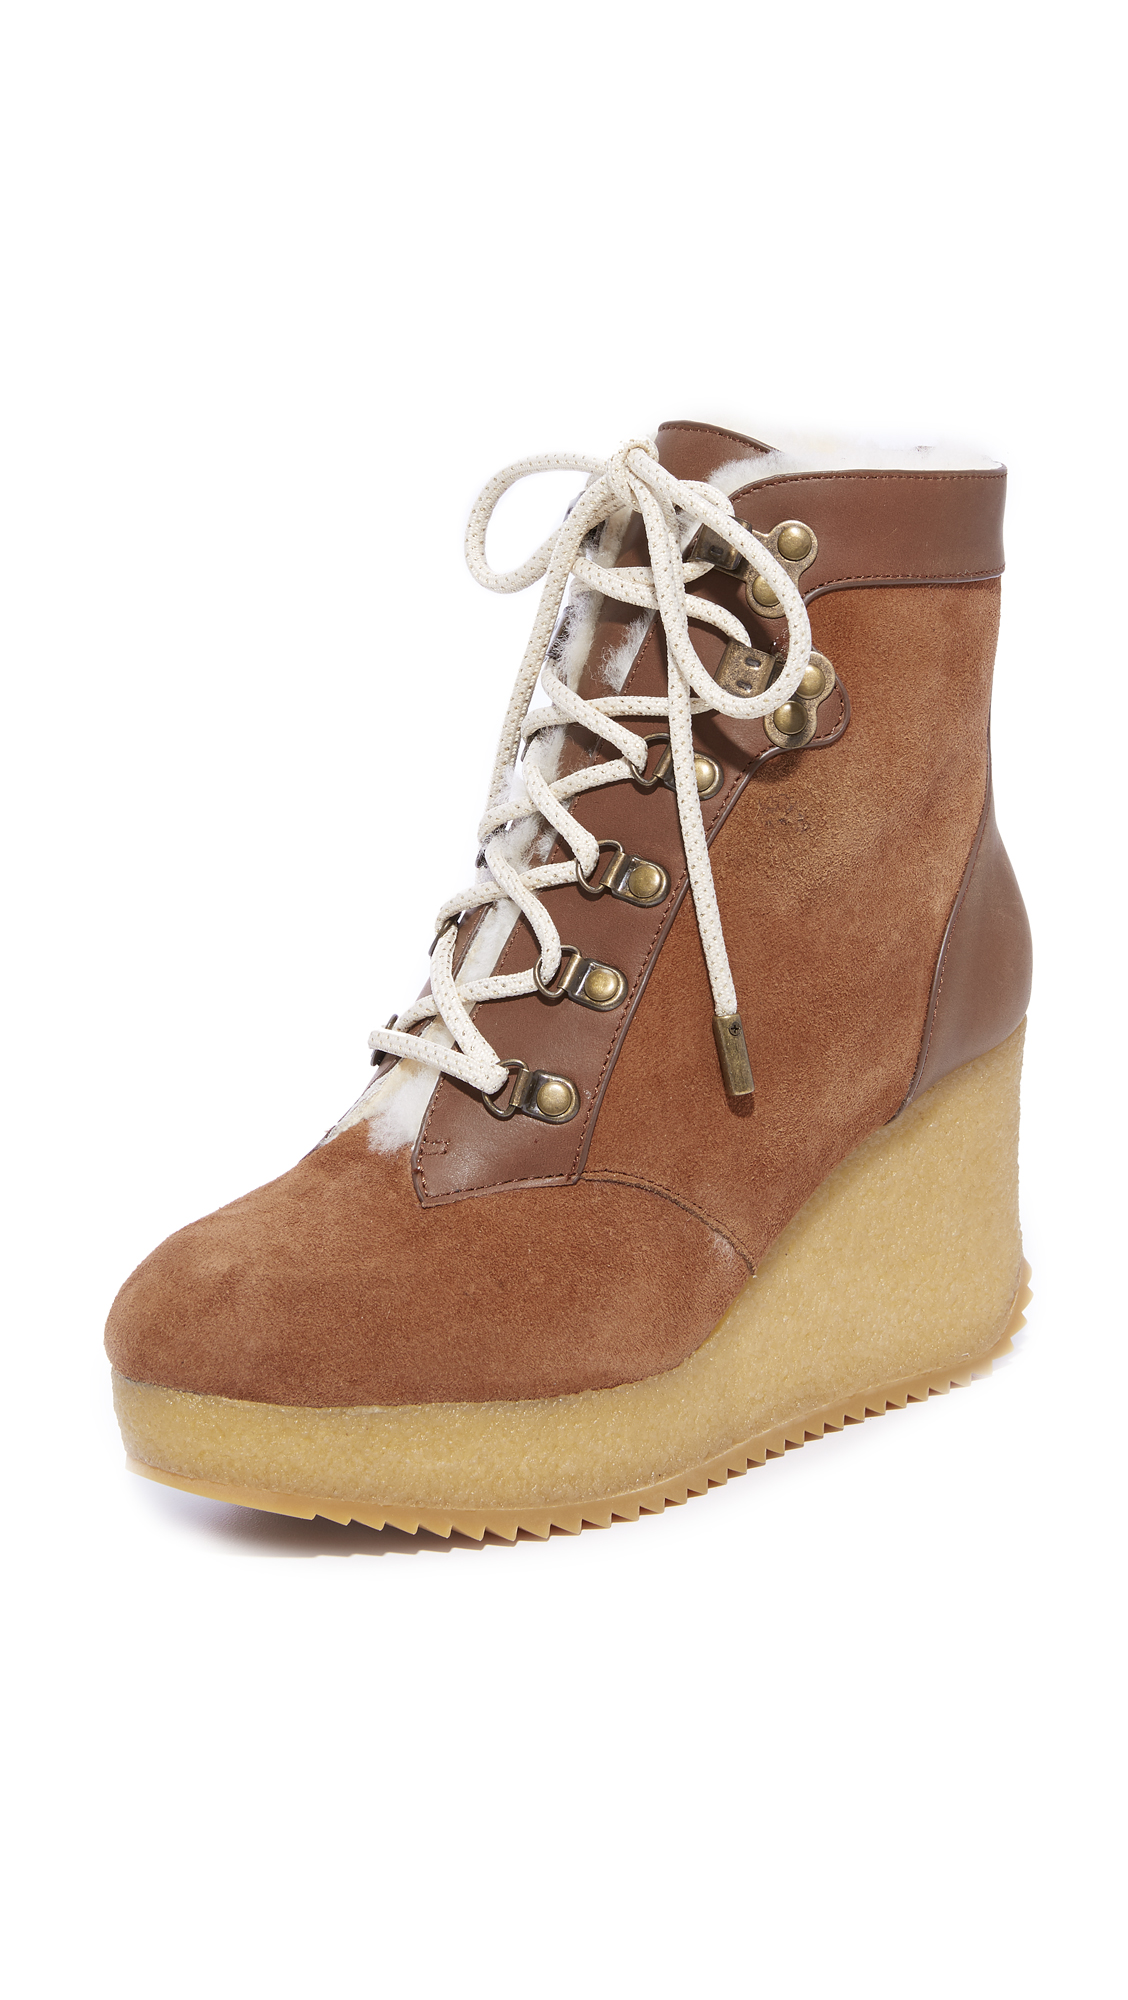 Joie Alary Wedge Hiker Booties - Burnt Umber